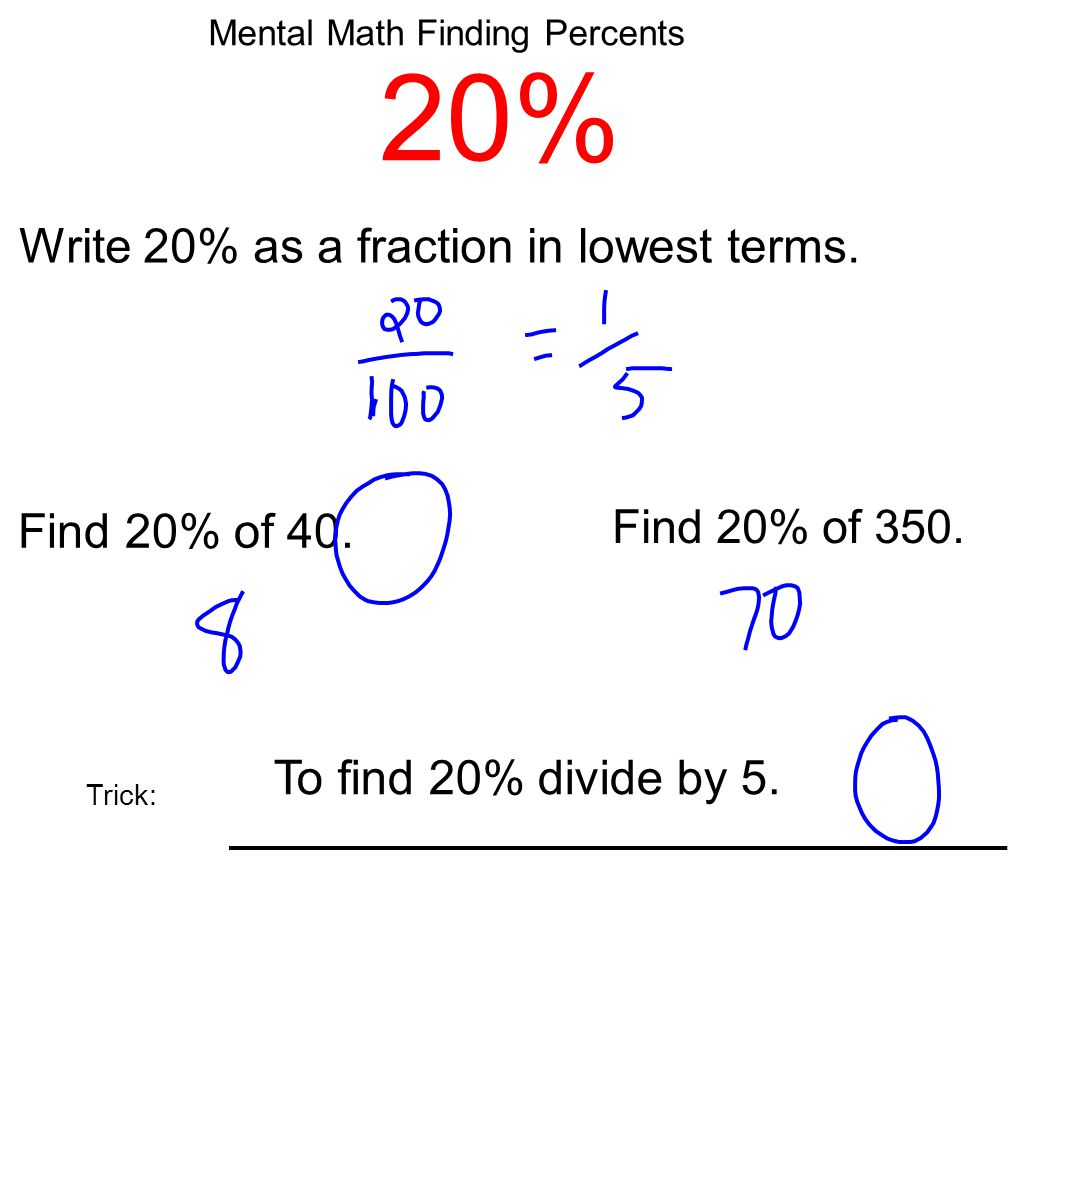 Mental Math Finding Percents 20% Write 20% as a fraction in lowest terms.